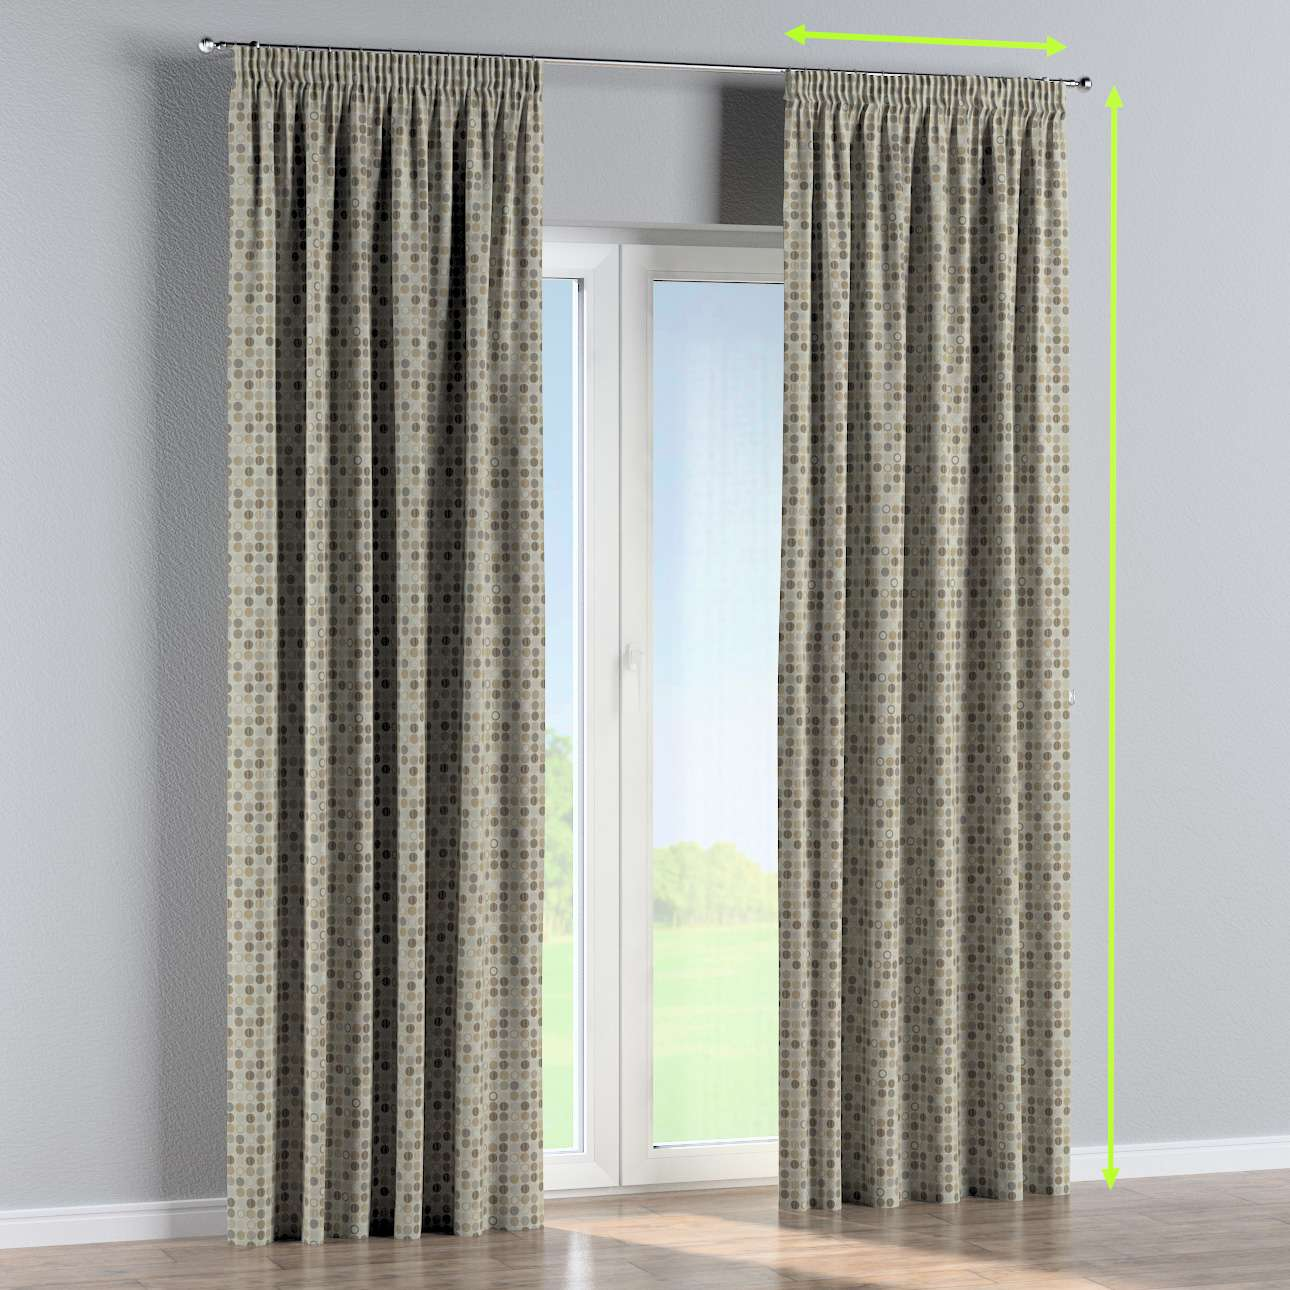 Pencil pleat curtains in collection Retro Glam, fabric: 142-81